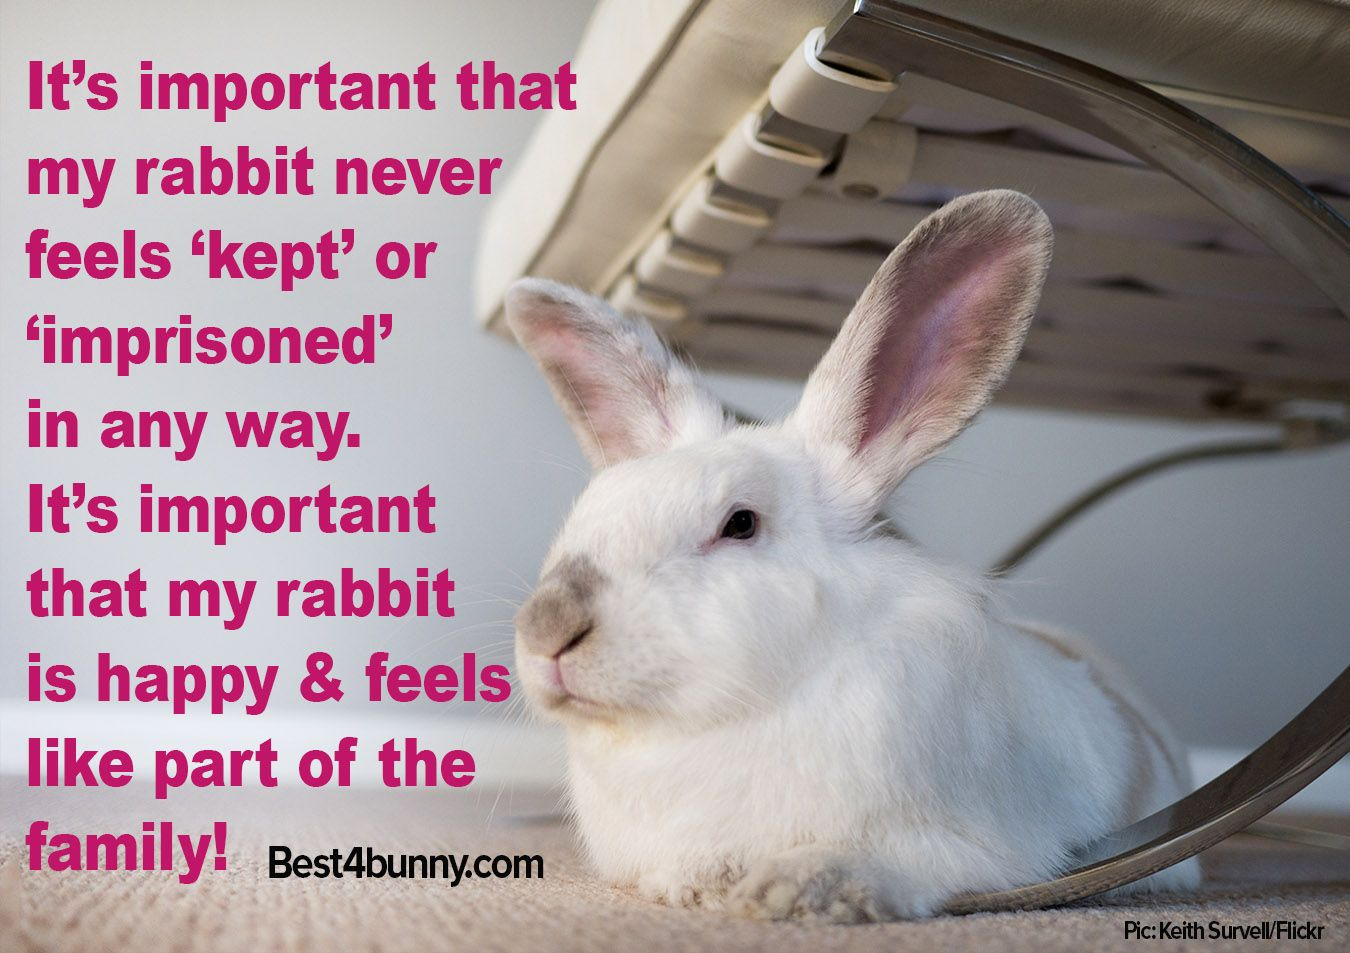 Rabbit care advice (With images) Bunny care, Rabbit care